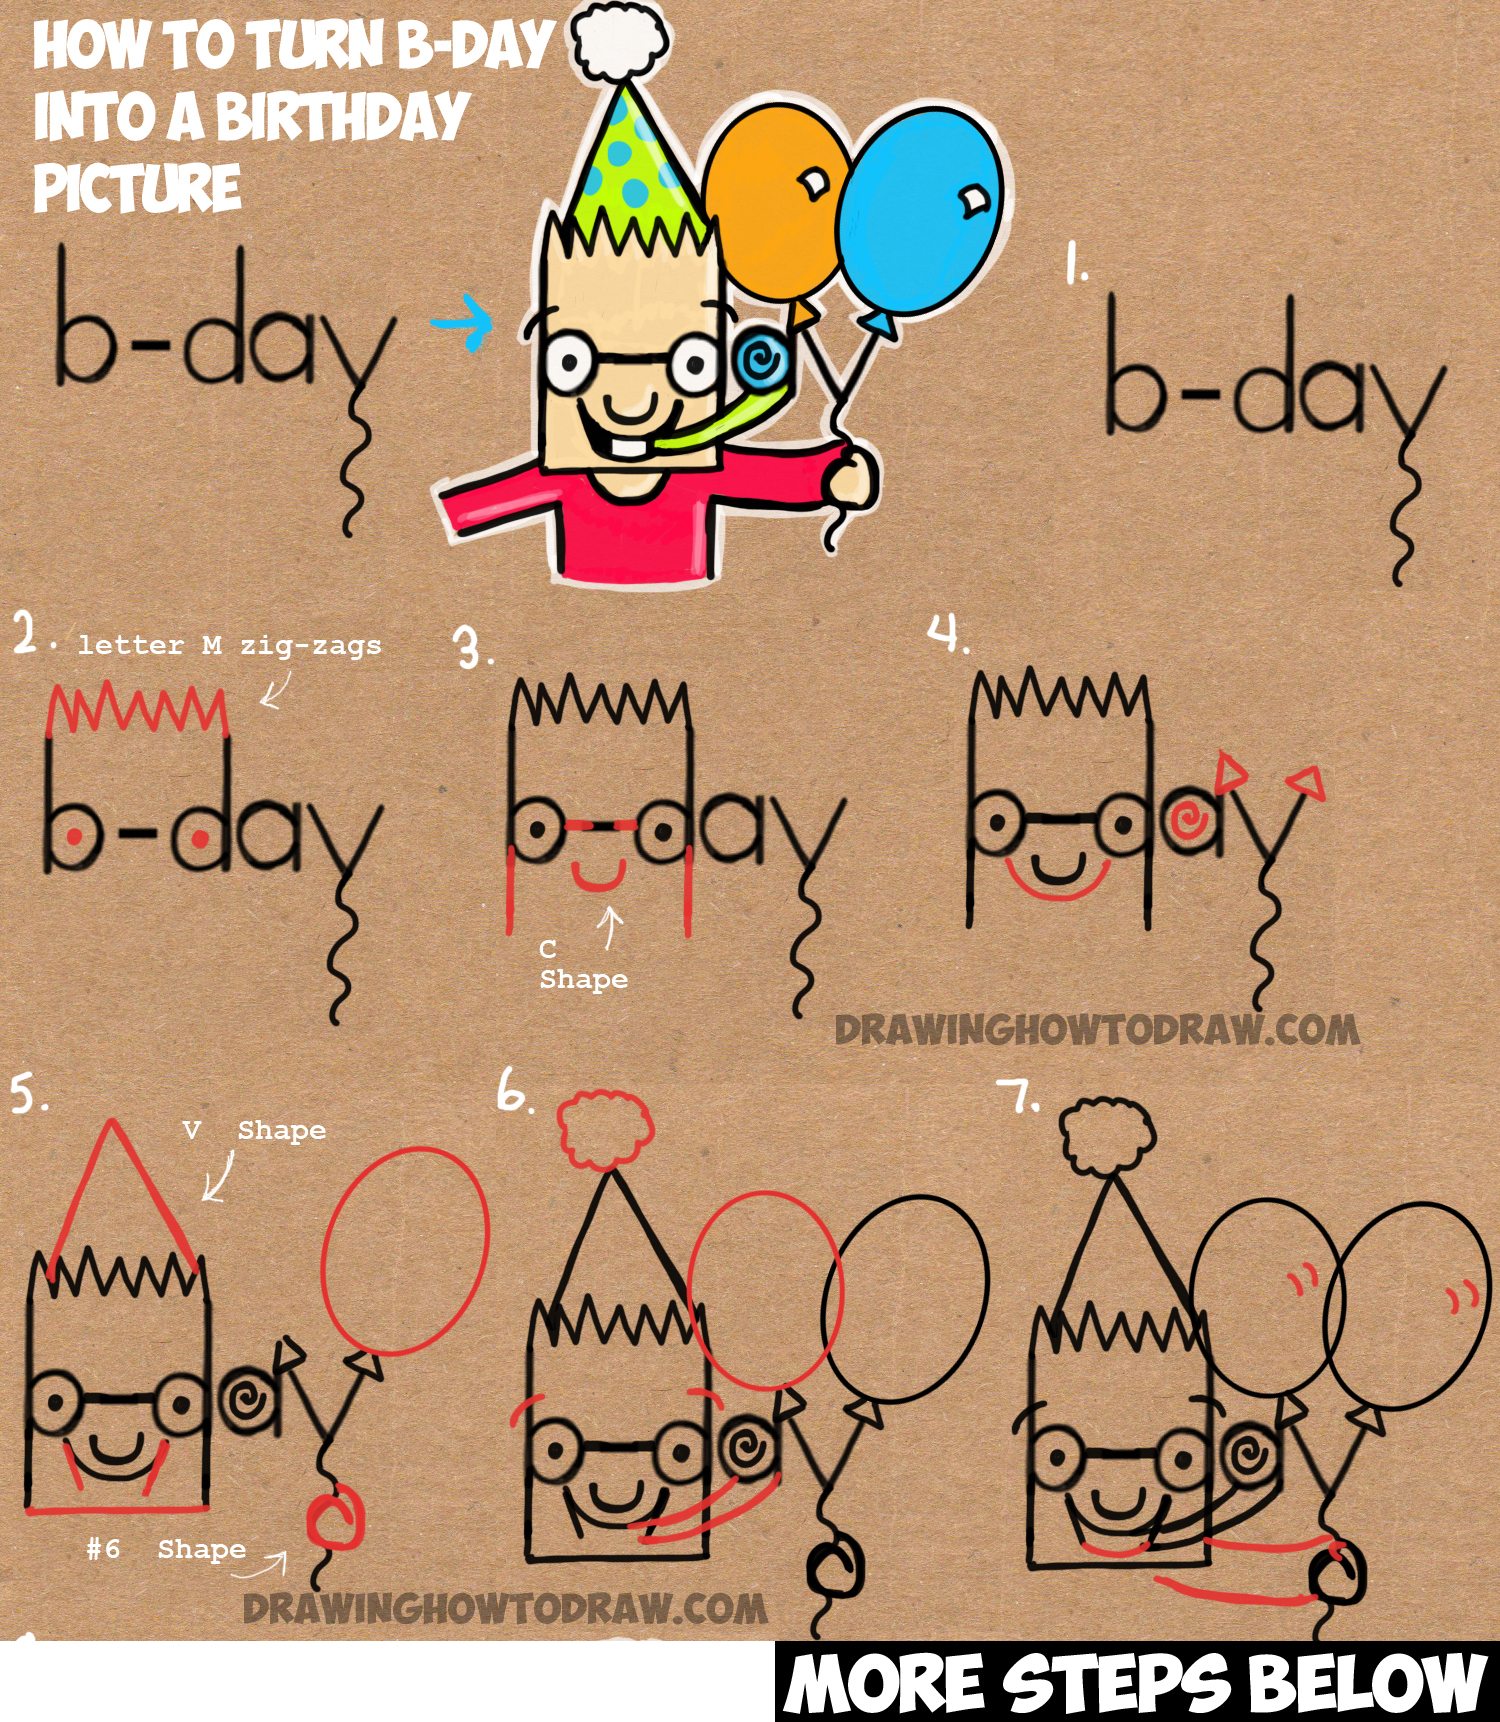 How To Draw Cartoon Birthday Party Boy Holding Balloons From The